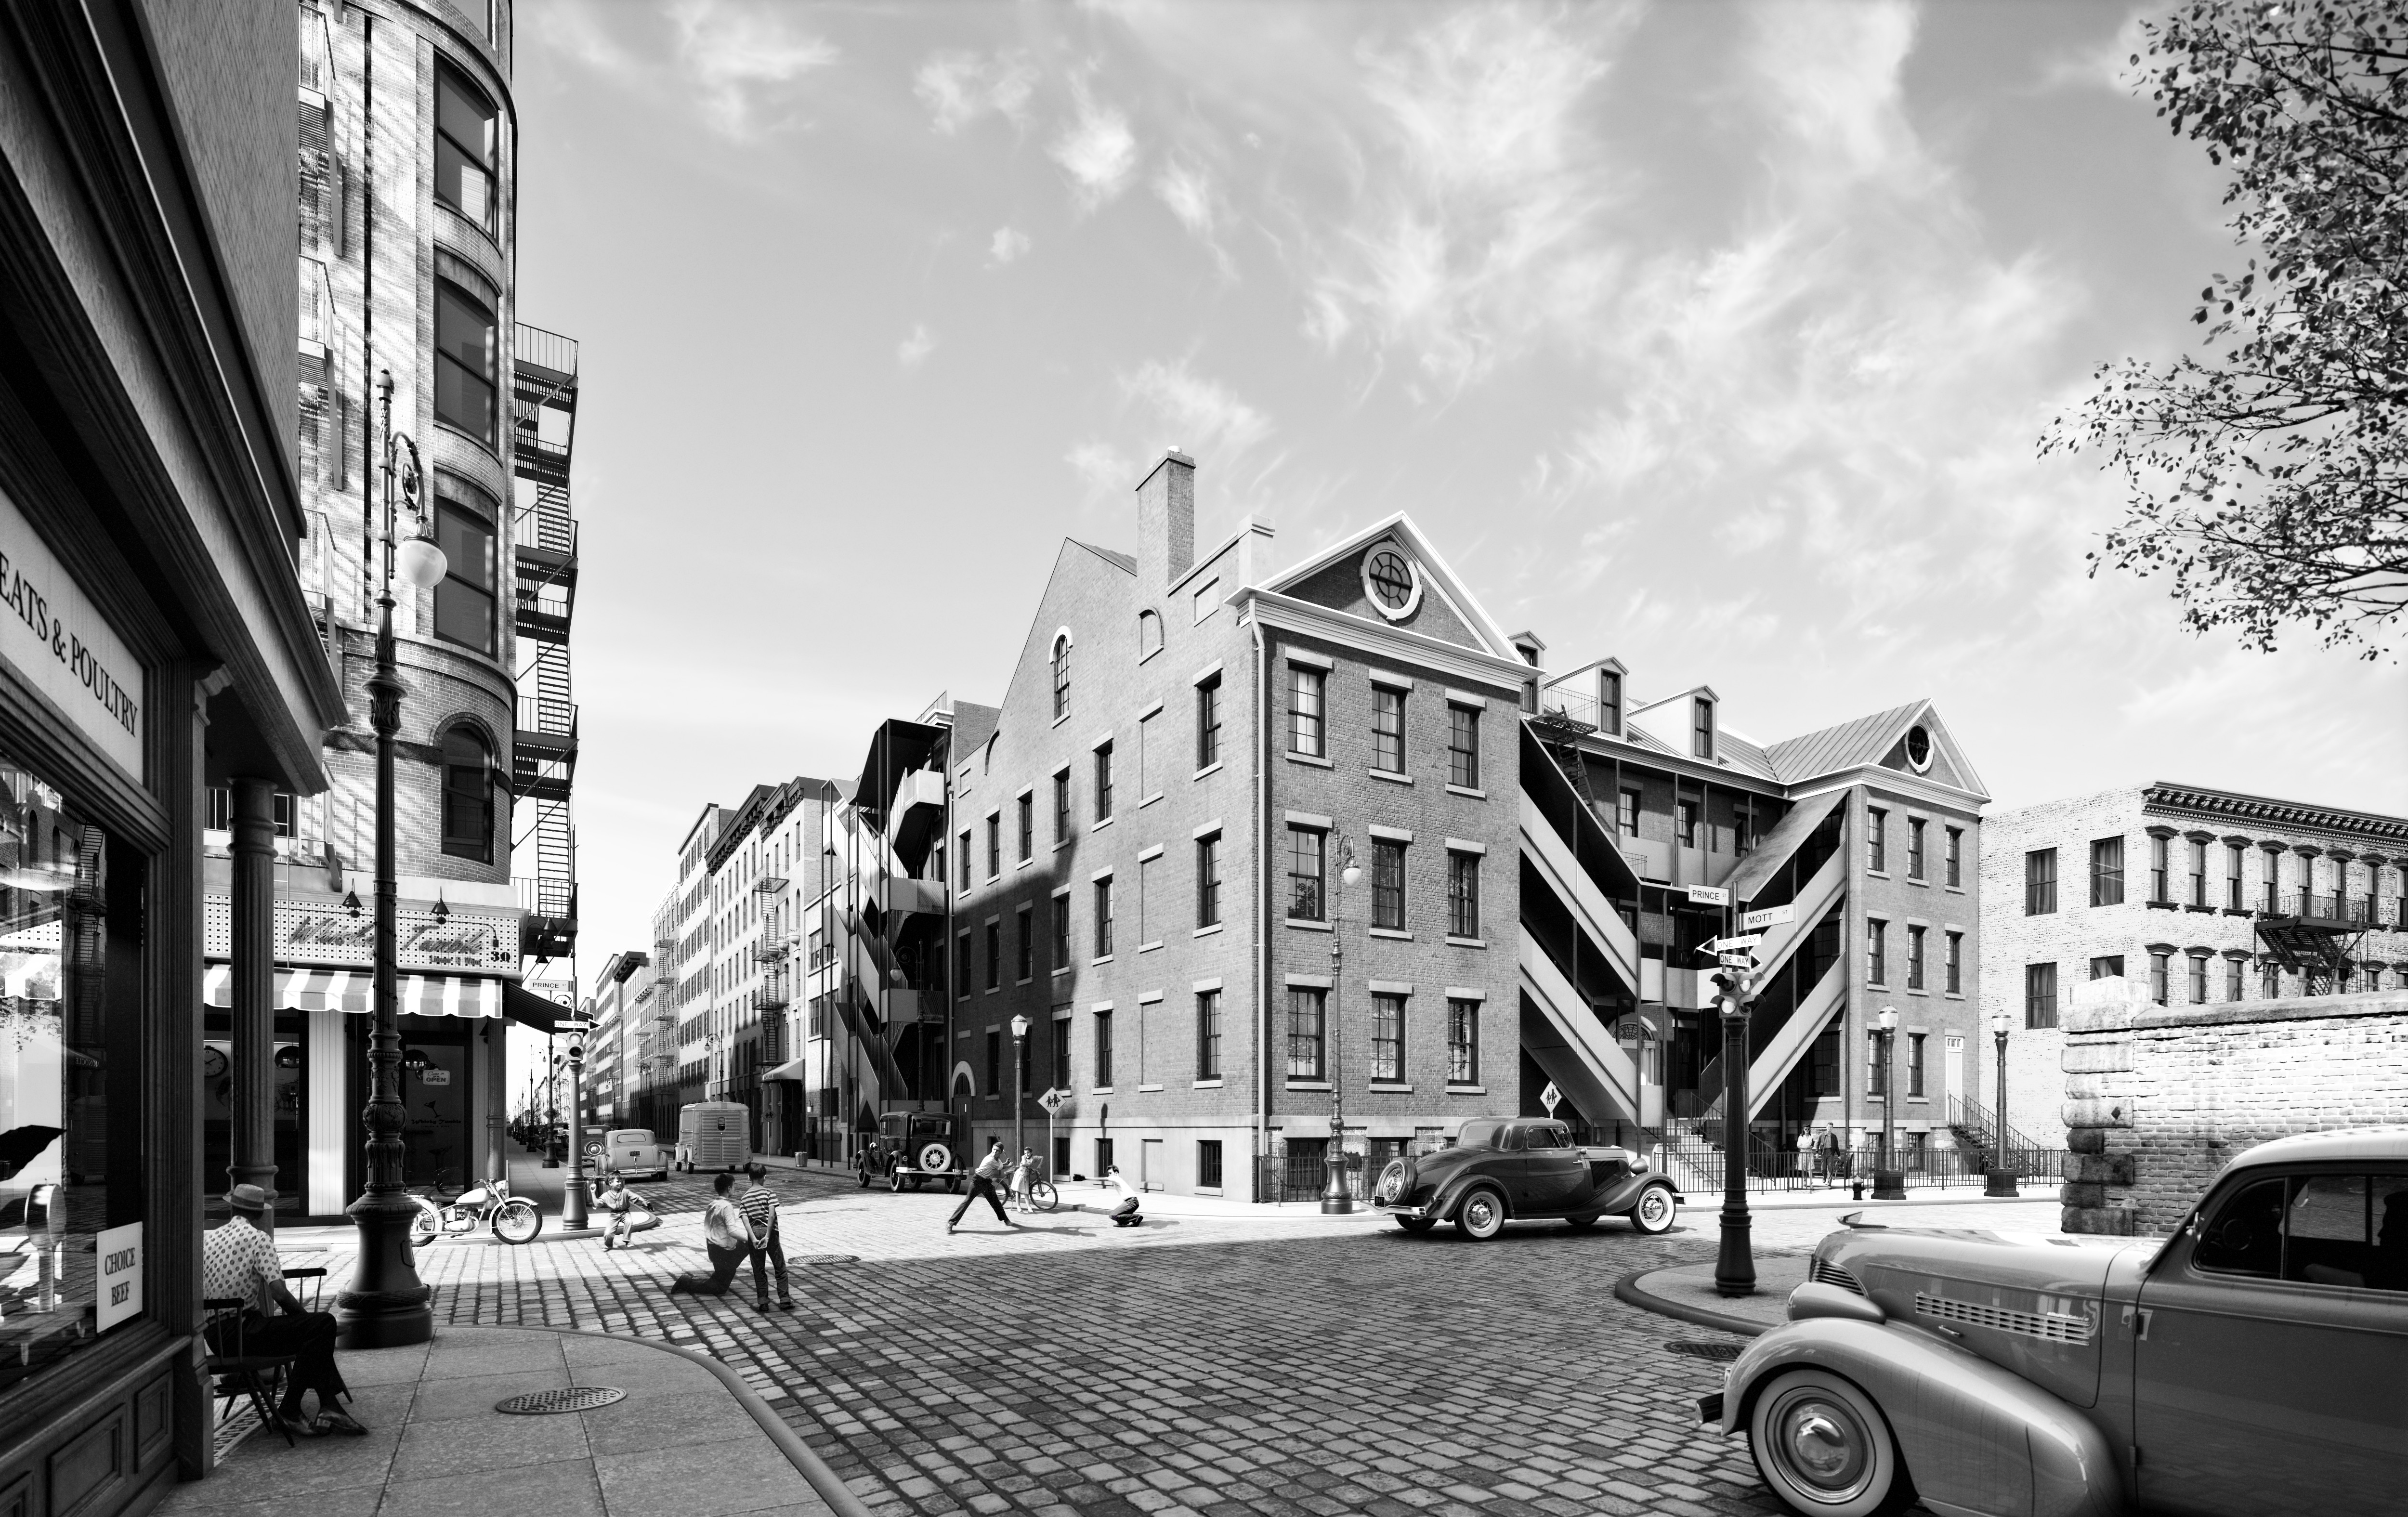 34 Prince Street in the 1940s, rendering by Marvel Architects